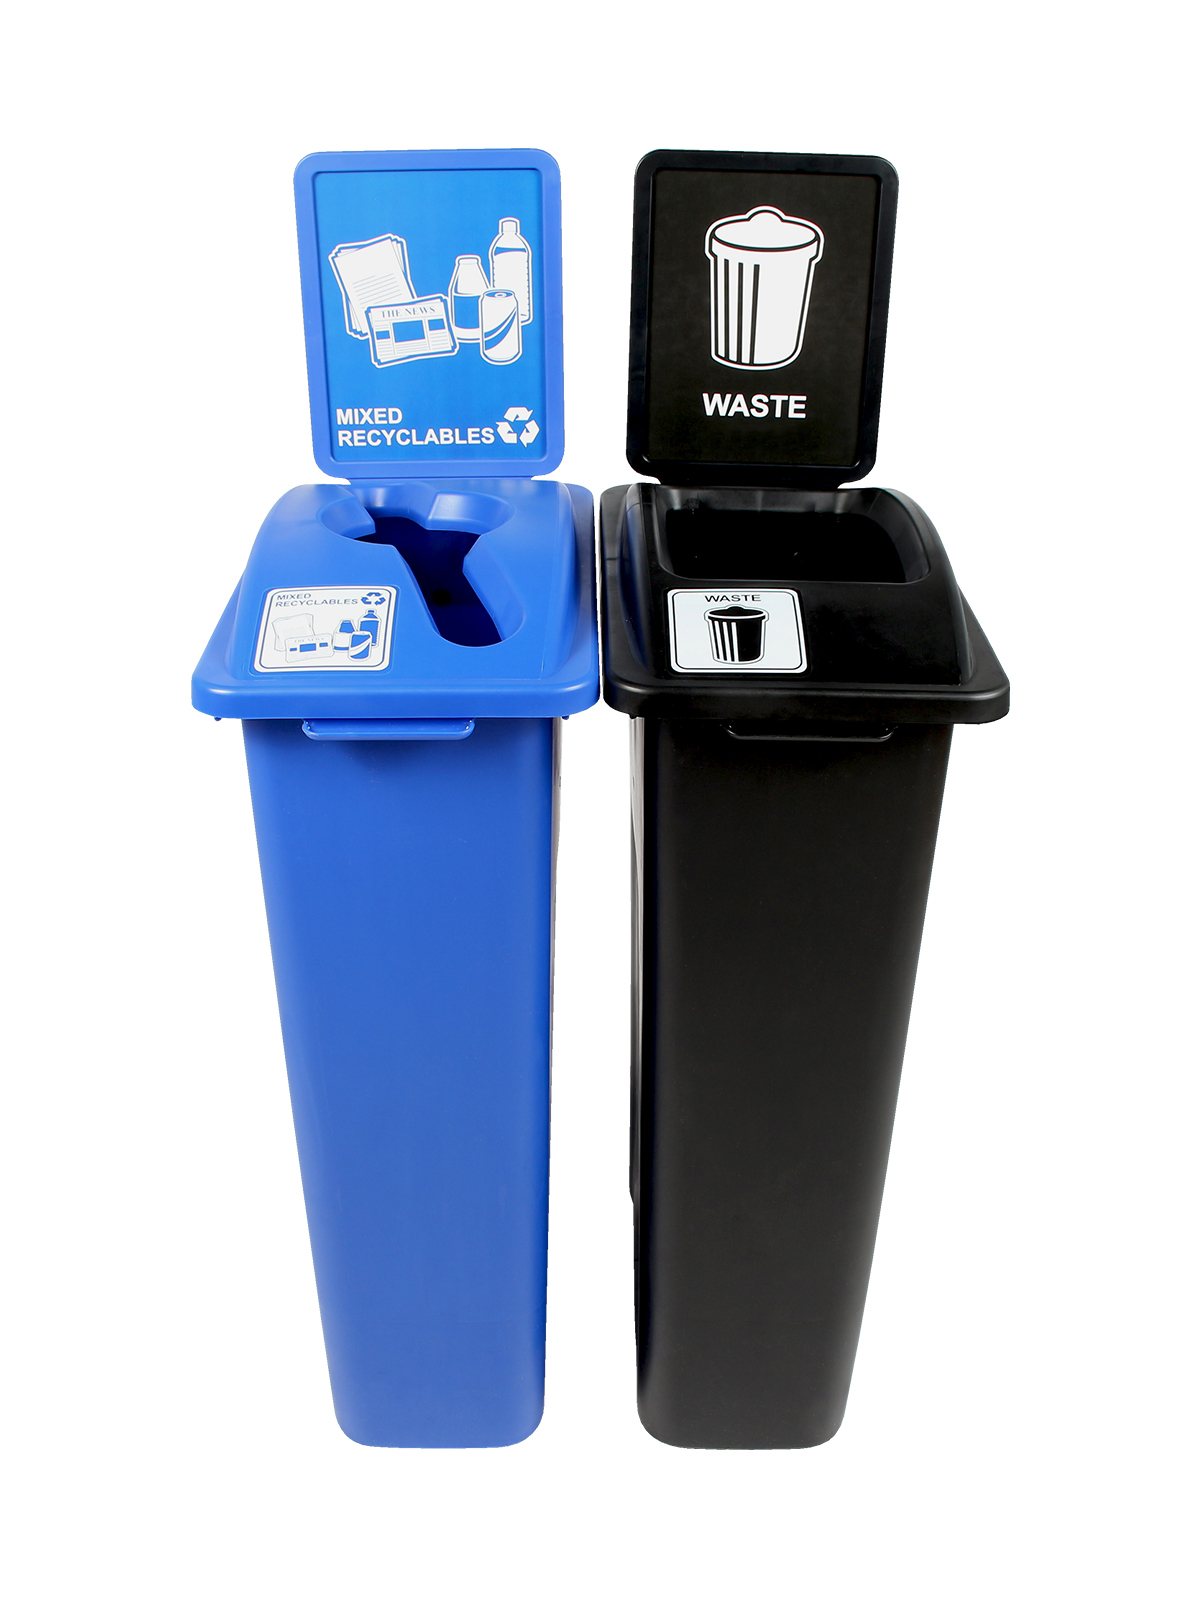 WASTE WATCHER - Double - Mixed Recyclables-Waste - Mixed-Full - Blue-Black